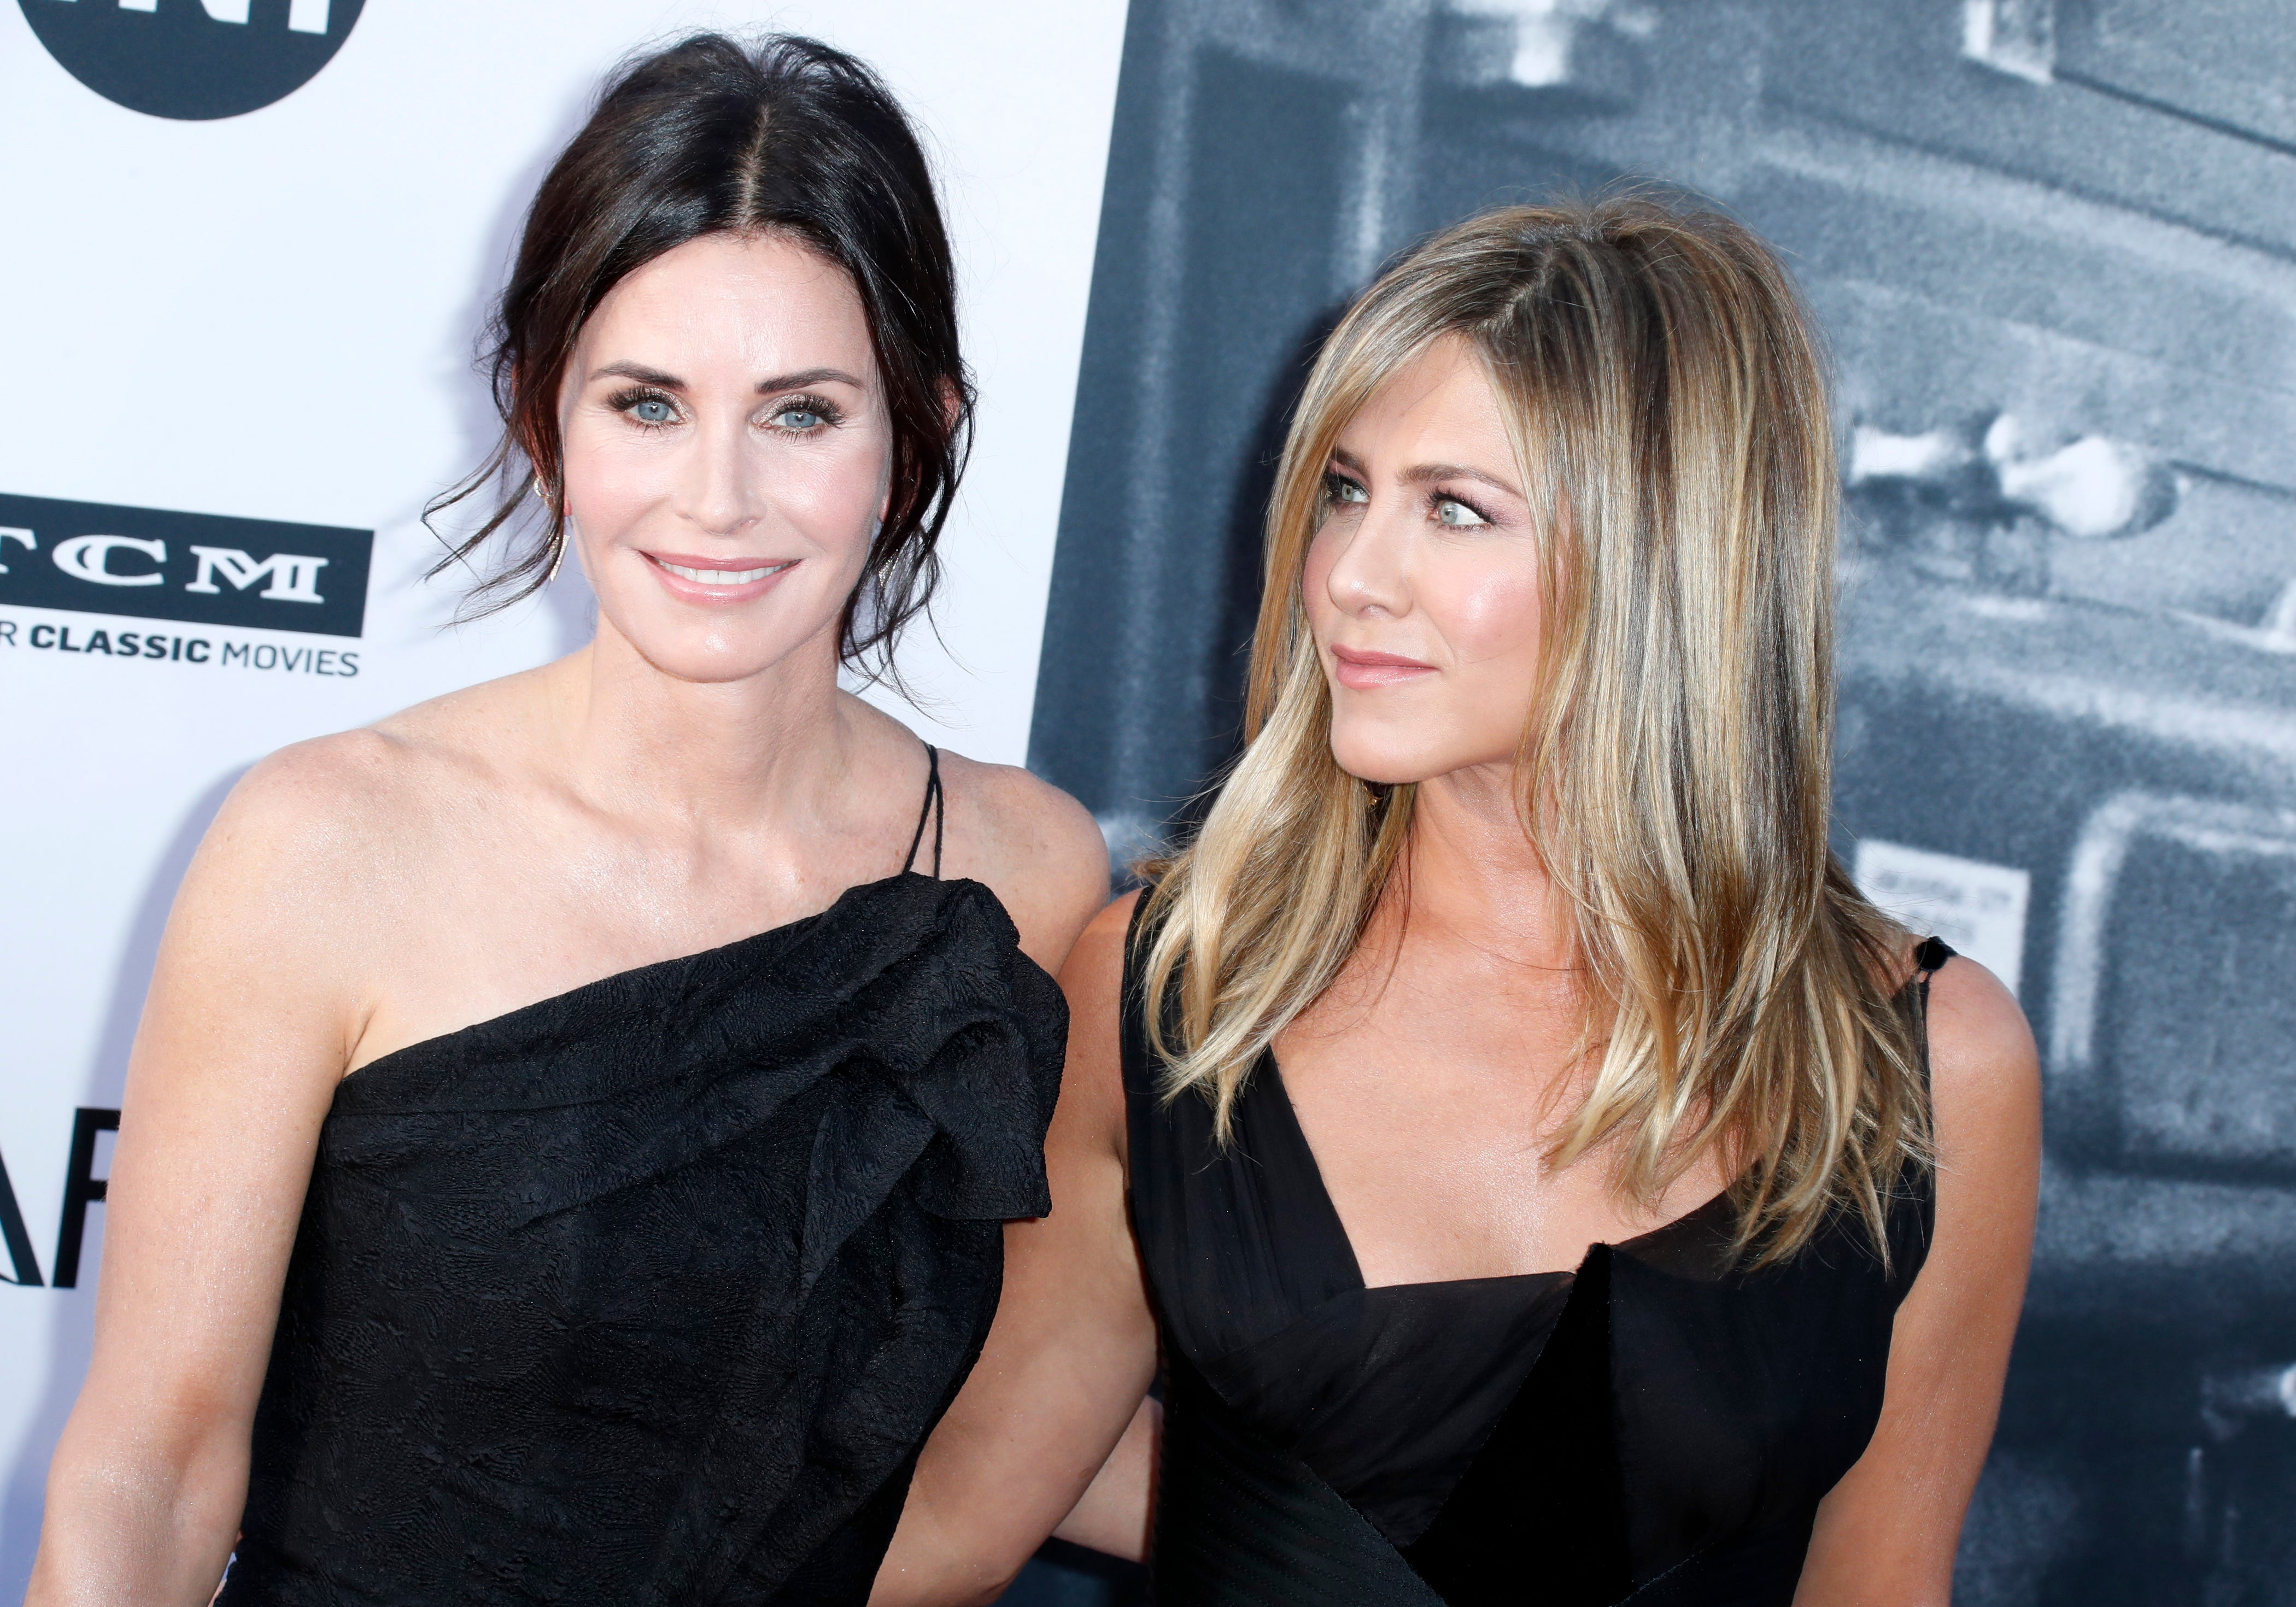 'Friends' forever! Courteney Cox would 'do anything' to act with the former cast